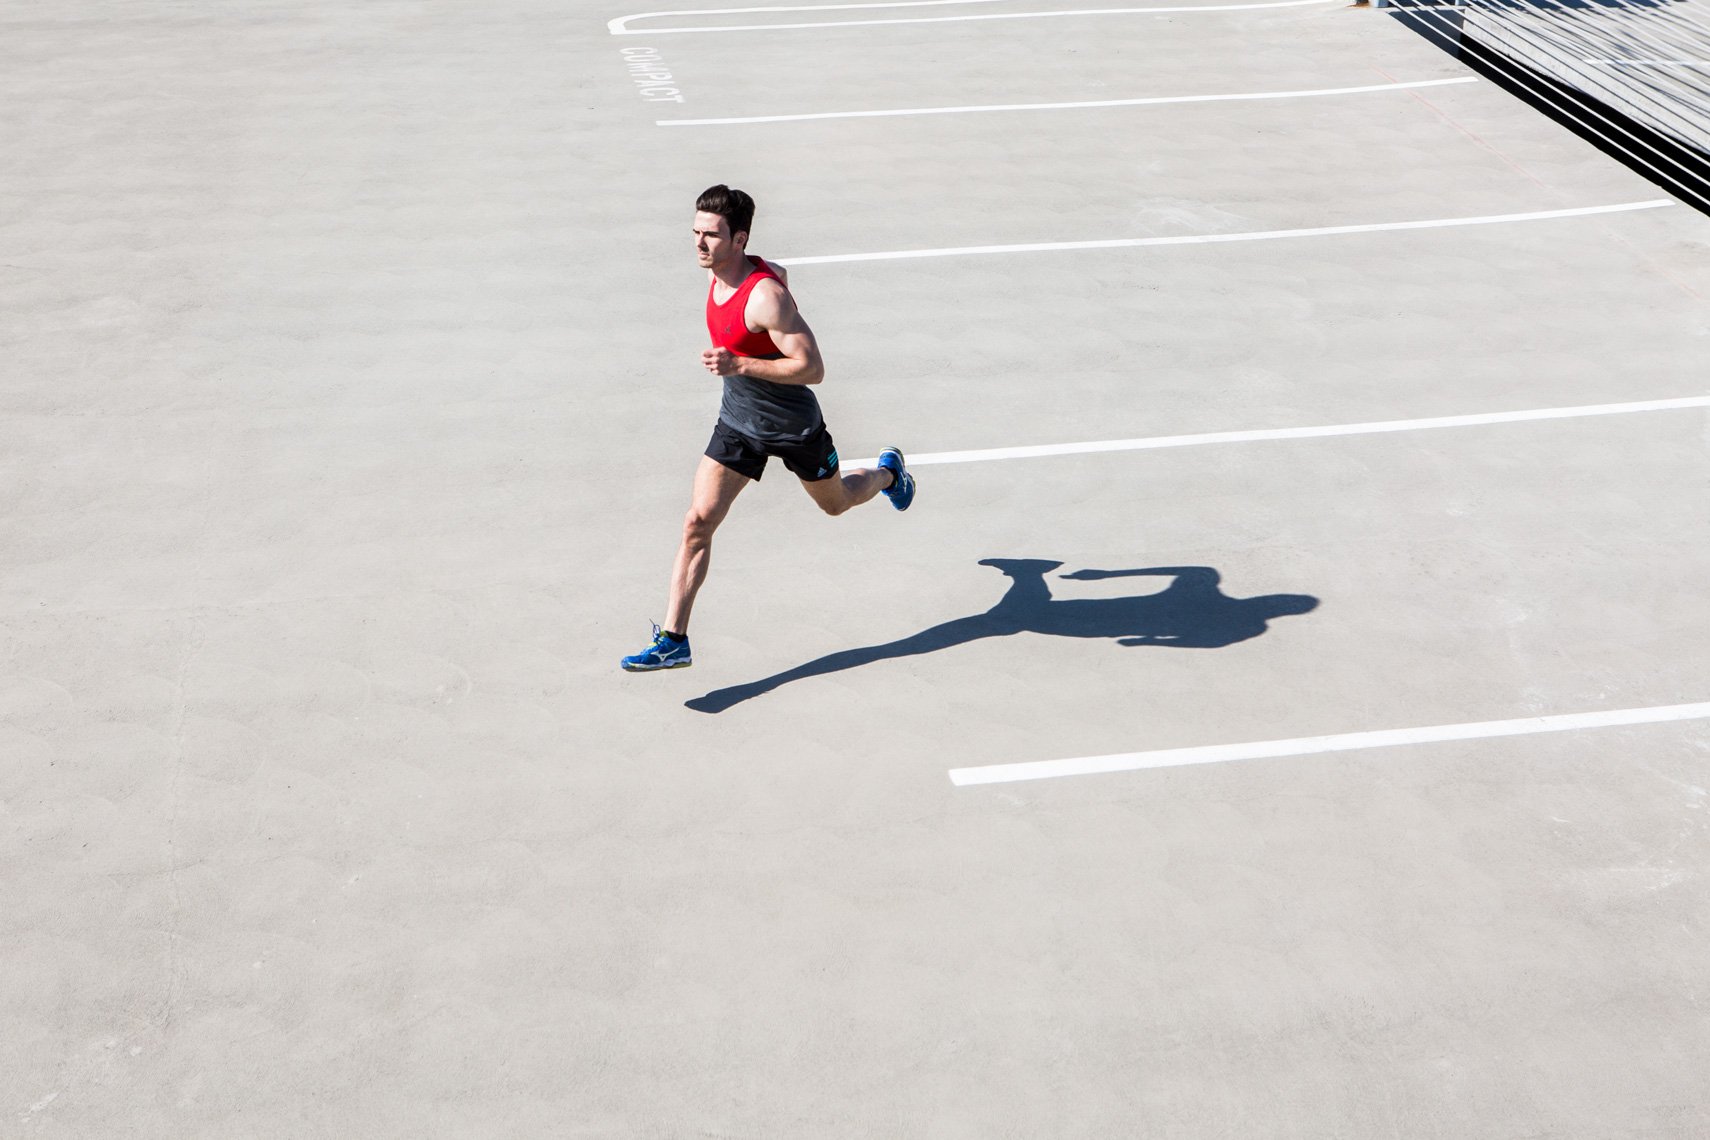 Man running through parking lot with shadow